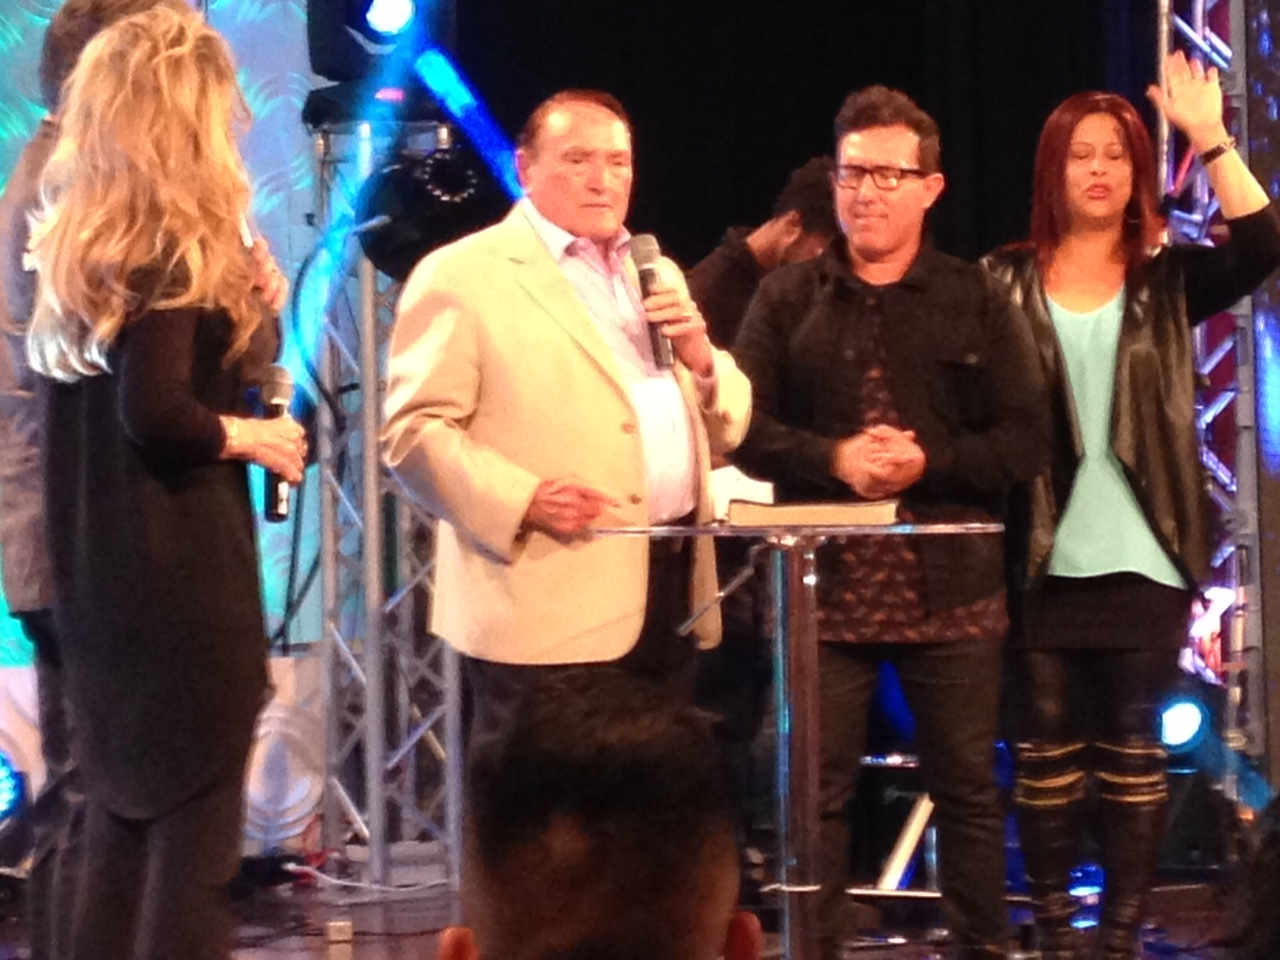 We came because Pastor Sergio De La Mora has agreed to minister at our 1st Love Conf. 2016, but it was another surprise to hear from Matt & Laurie Crouch of TBN & especially Dr. Morris Cerullo!